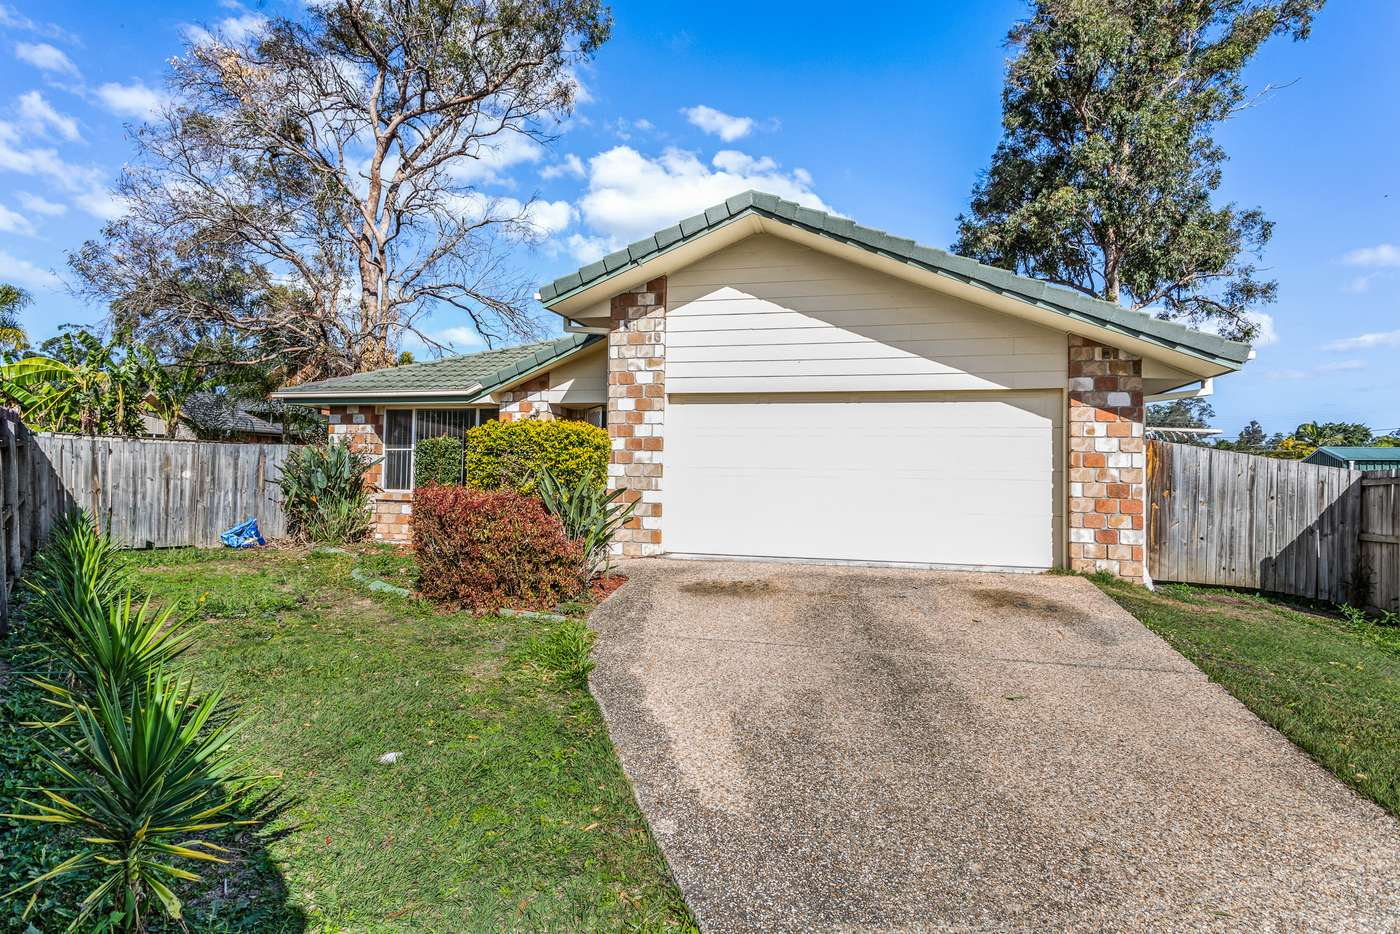 Main view of Homely house listing, 19 Avalon Ct, Marsden QLD 4132